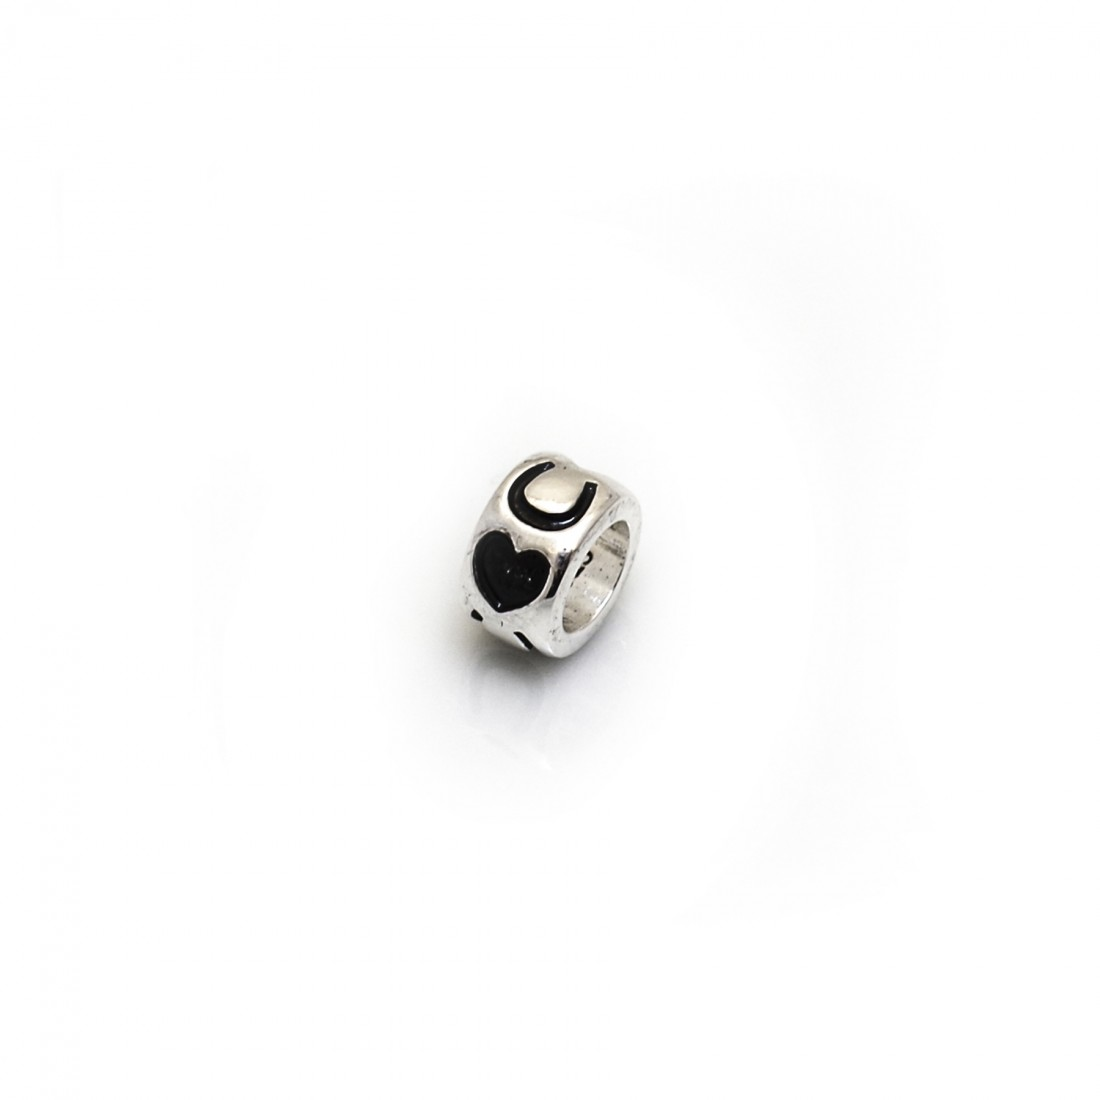 Exclusive Sterling Silver, Hearts & Horseshoes Roller Charm Bead